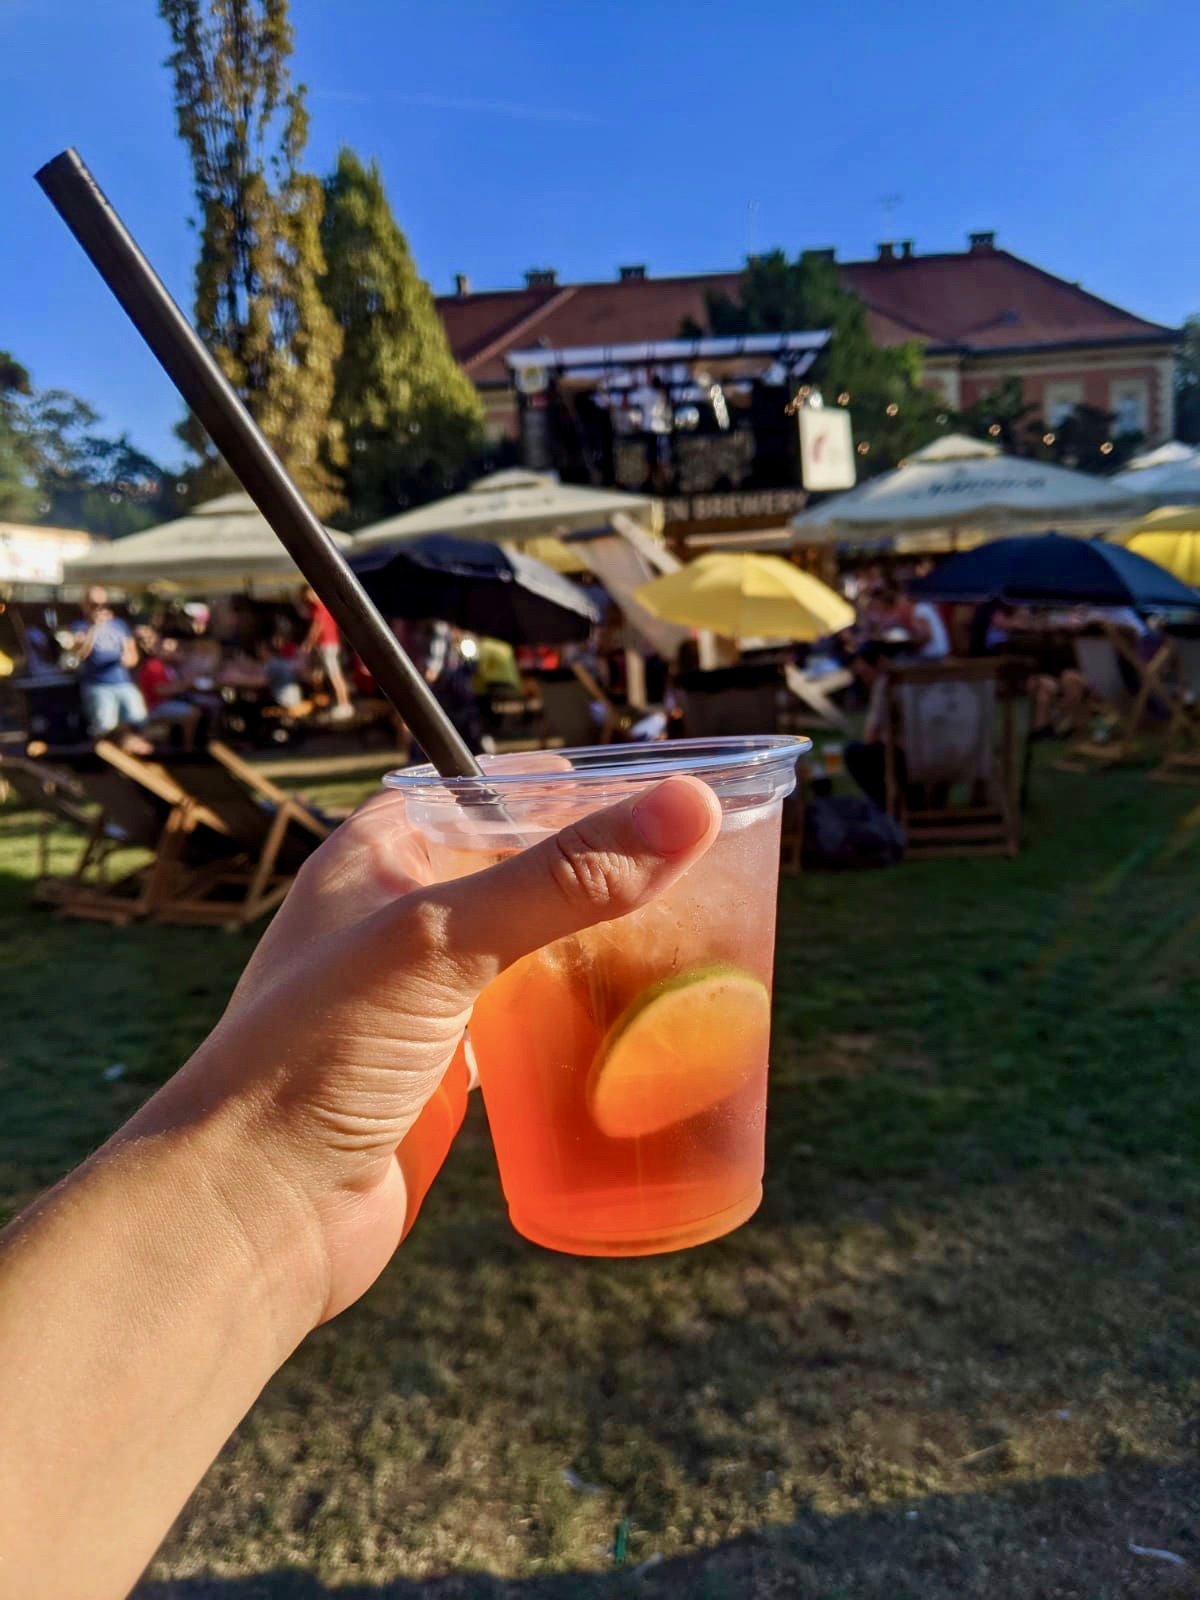 A hand holding an aperol spritz in a plastic cup at Zagreb burger festival